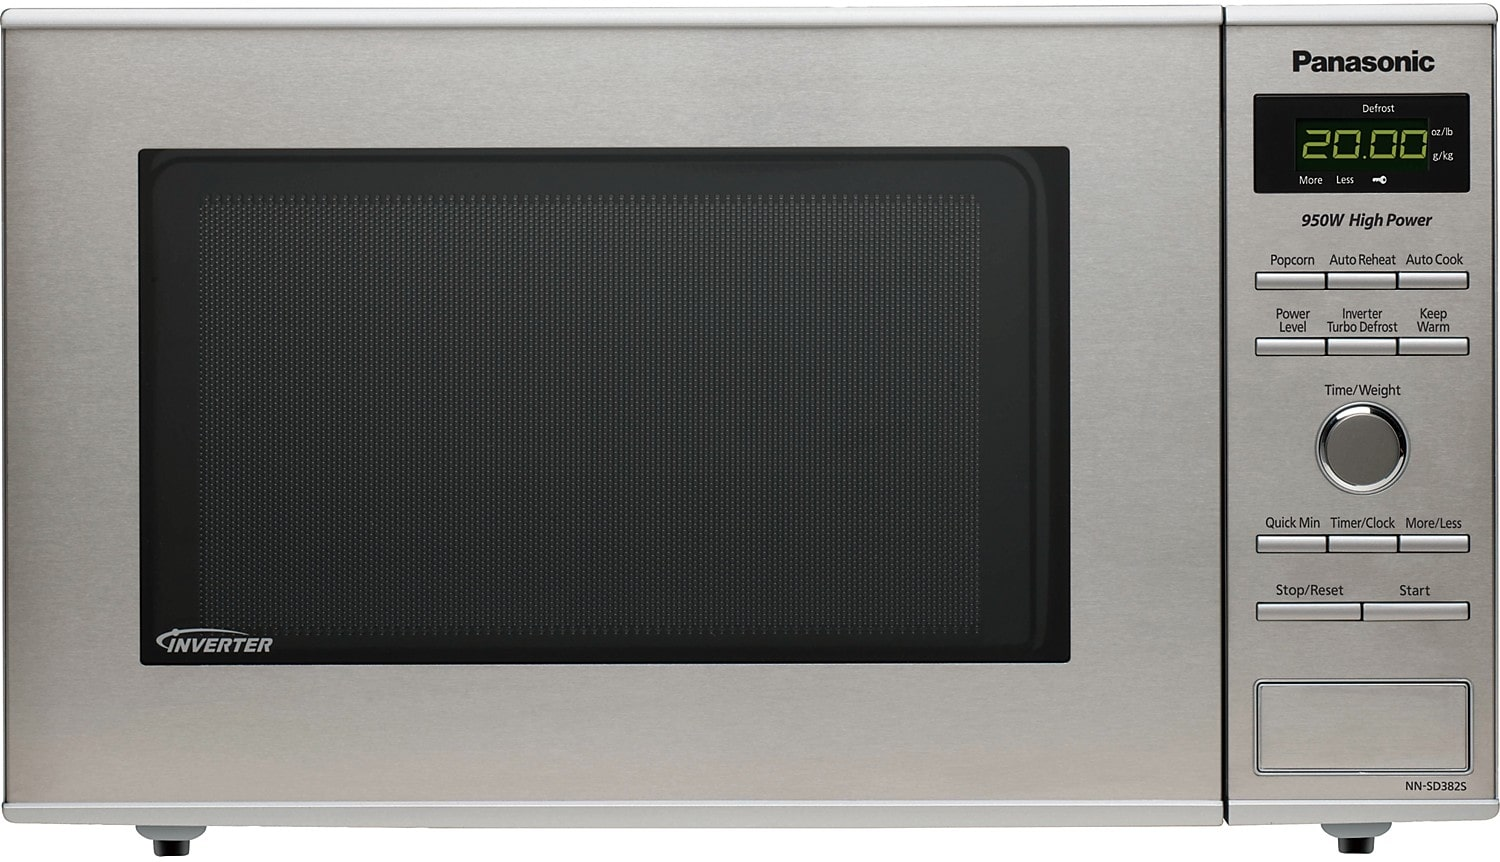 Panasonic 0.8 Cu. Ft. Countertop Microwave Oven – Stainless Steel